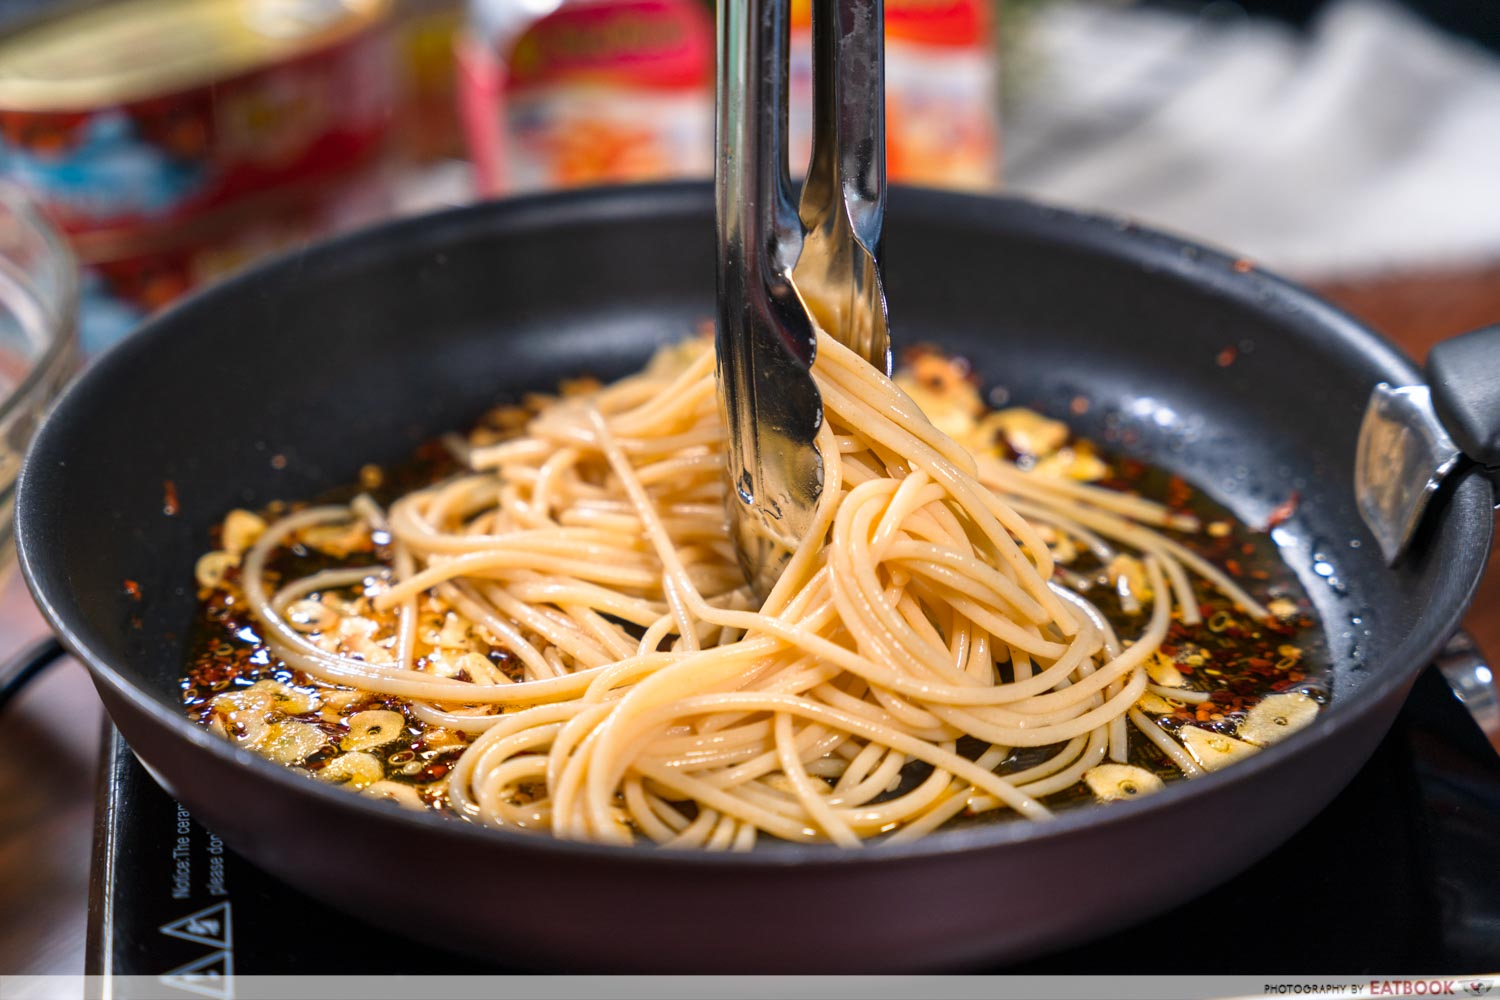 Canned food recipes - spicy aglio olio